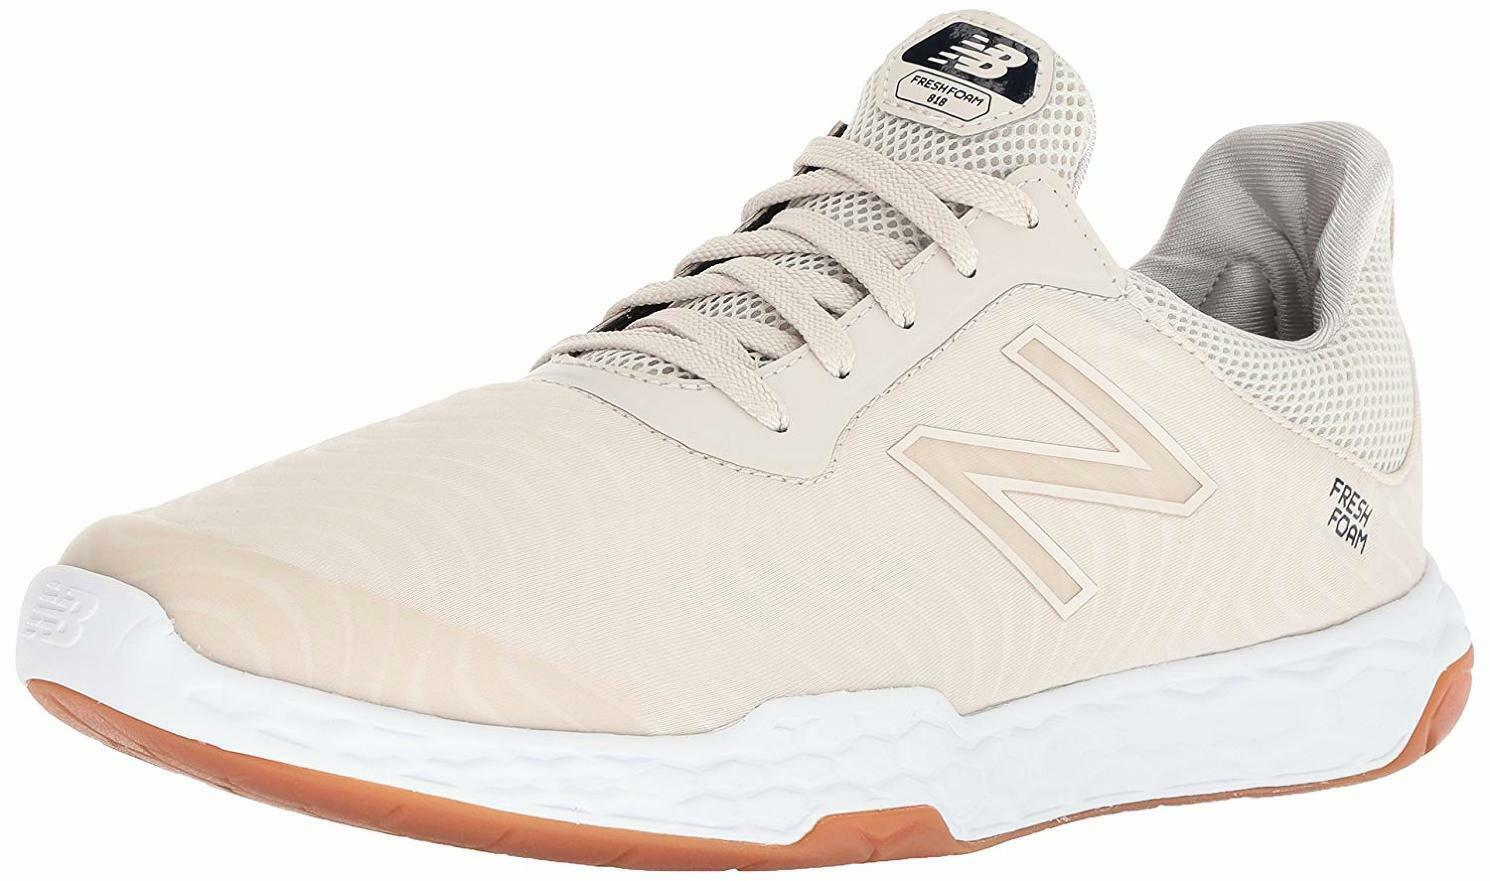 New Balance Men's 818v3 Fresh Foam Cross Trainer - Choose SZ color